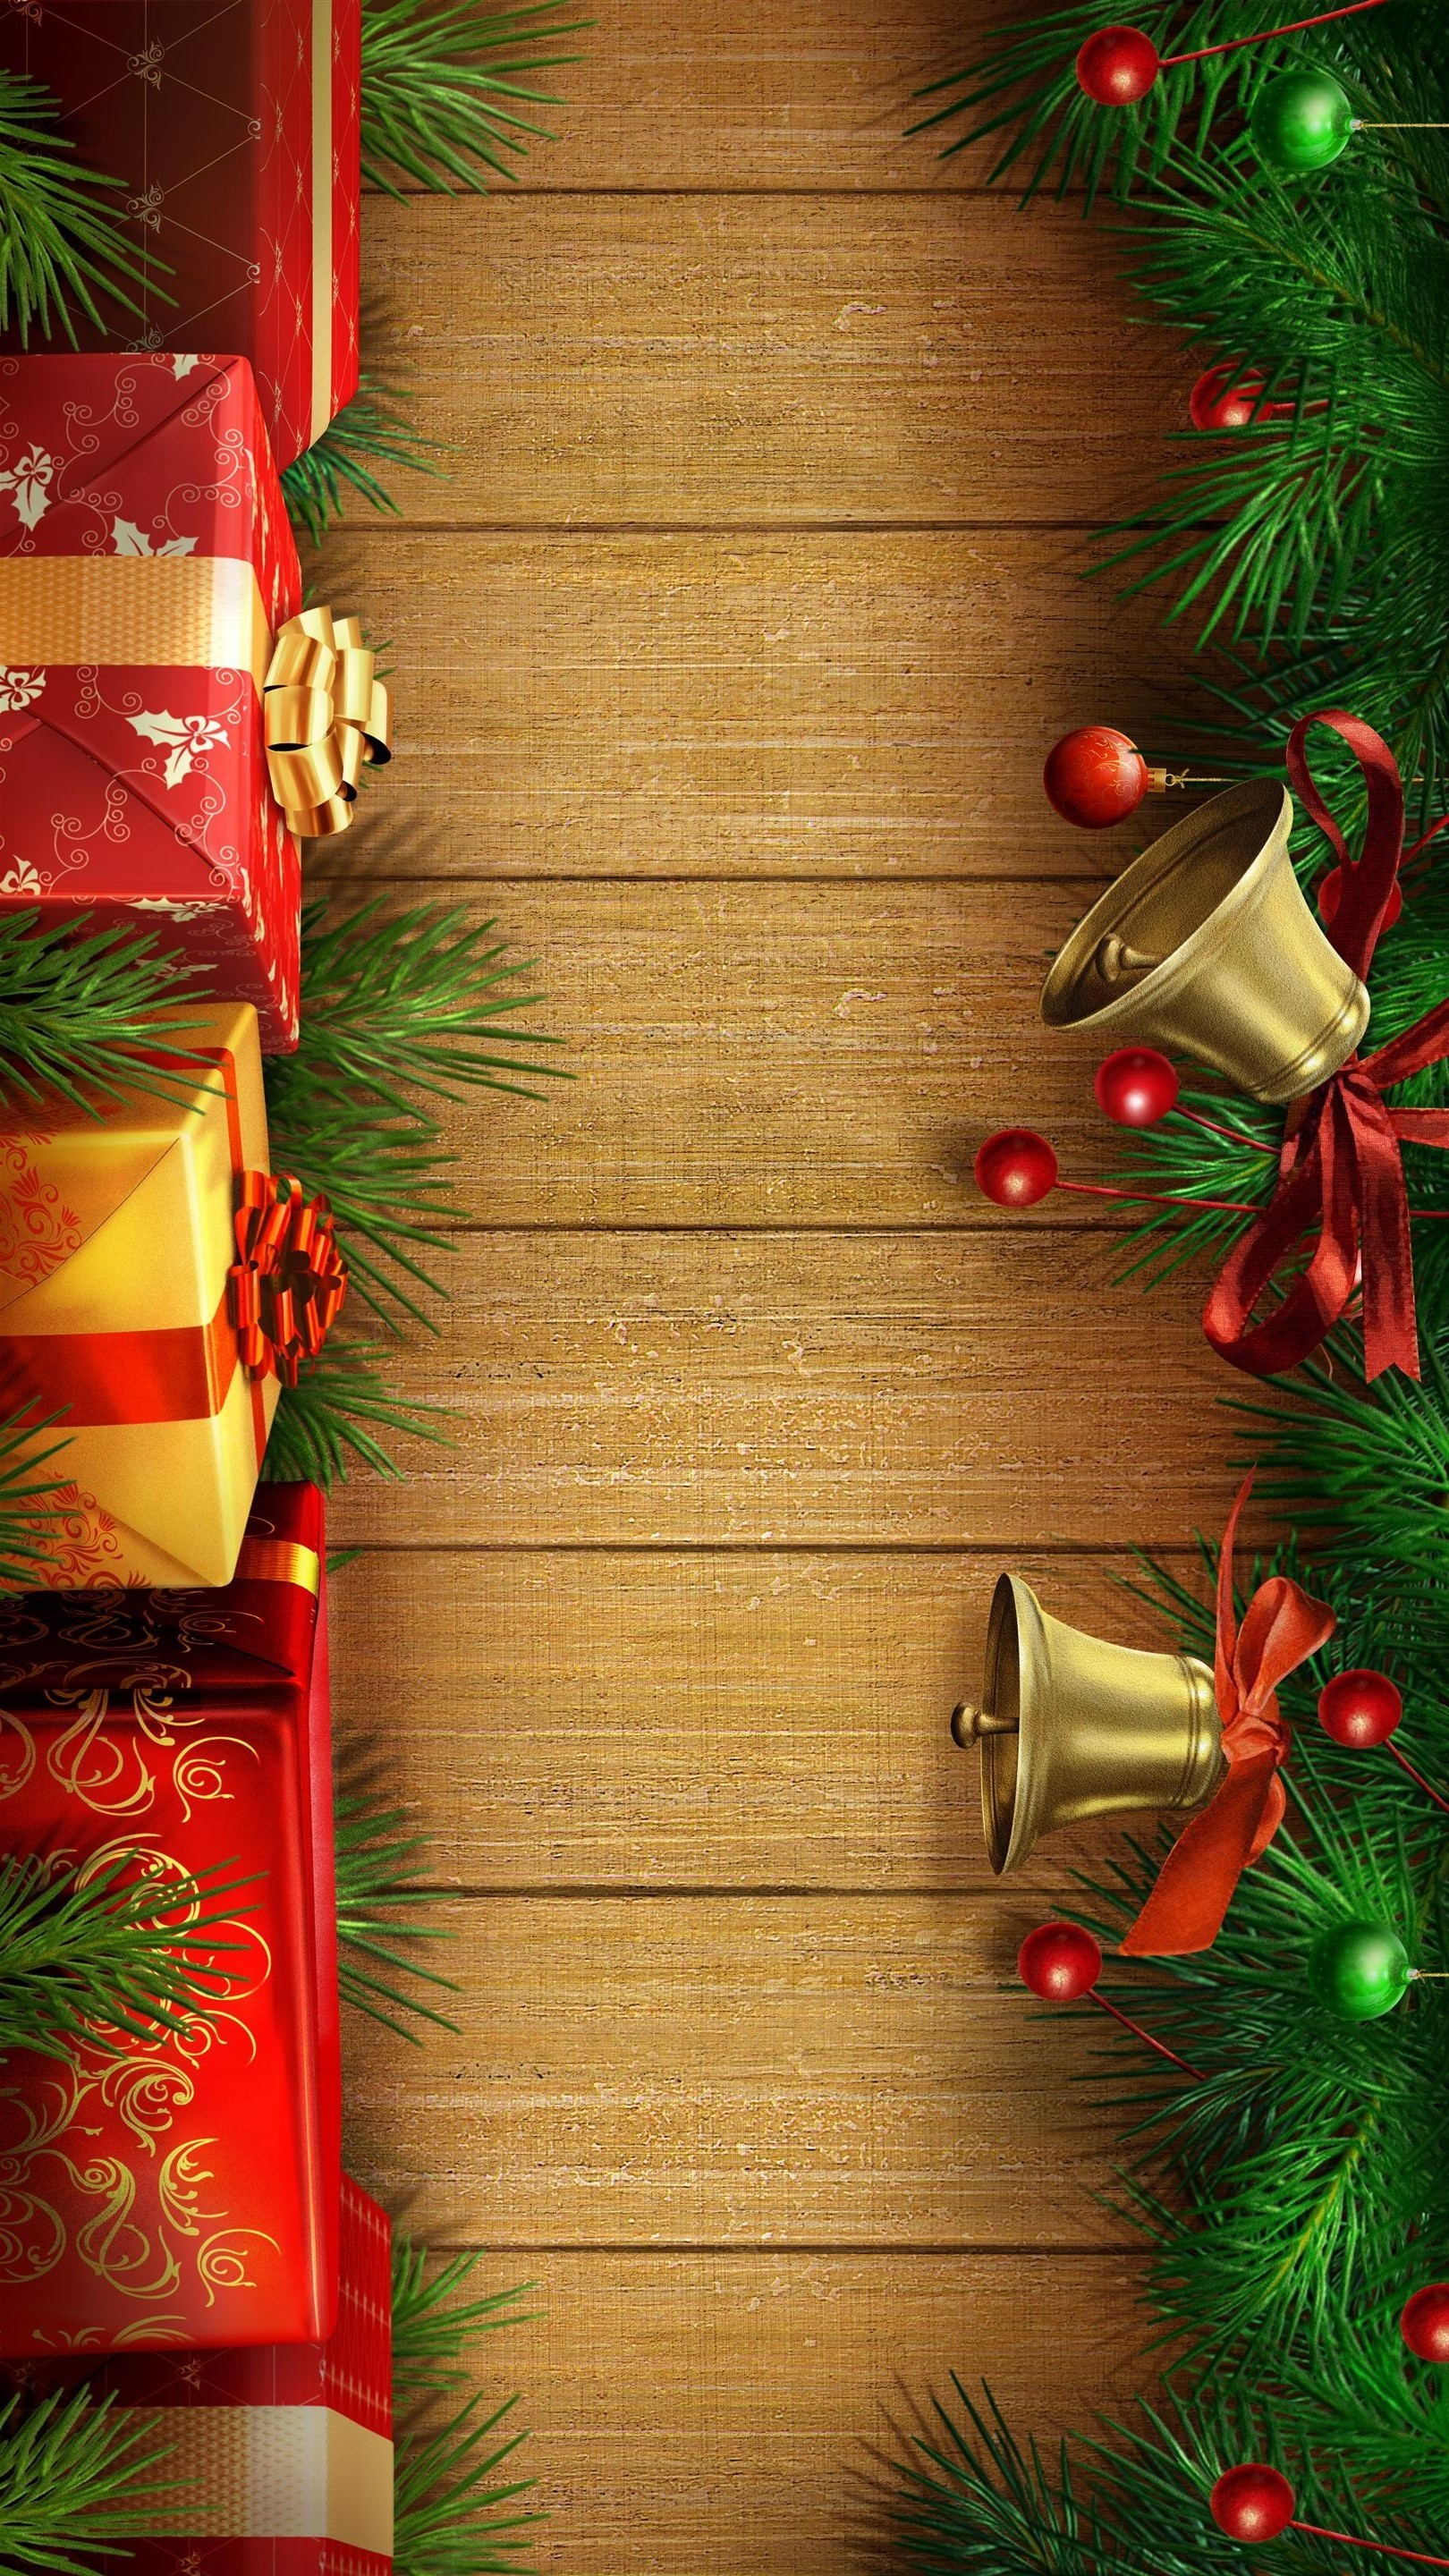 Christmas wallpaper Tumblr ·① Download free amazing wallpapers for desktop computers and ...